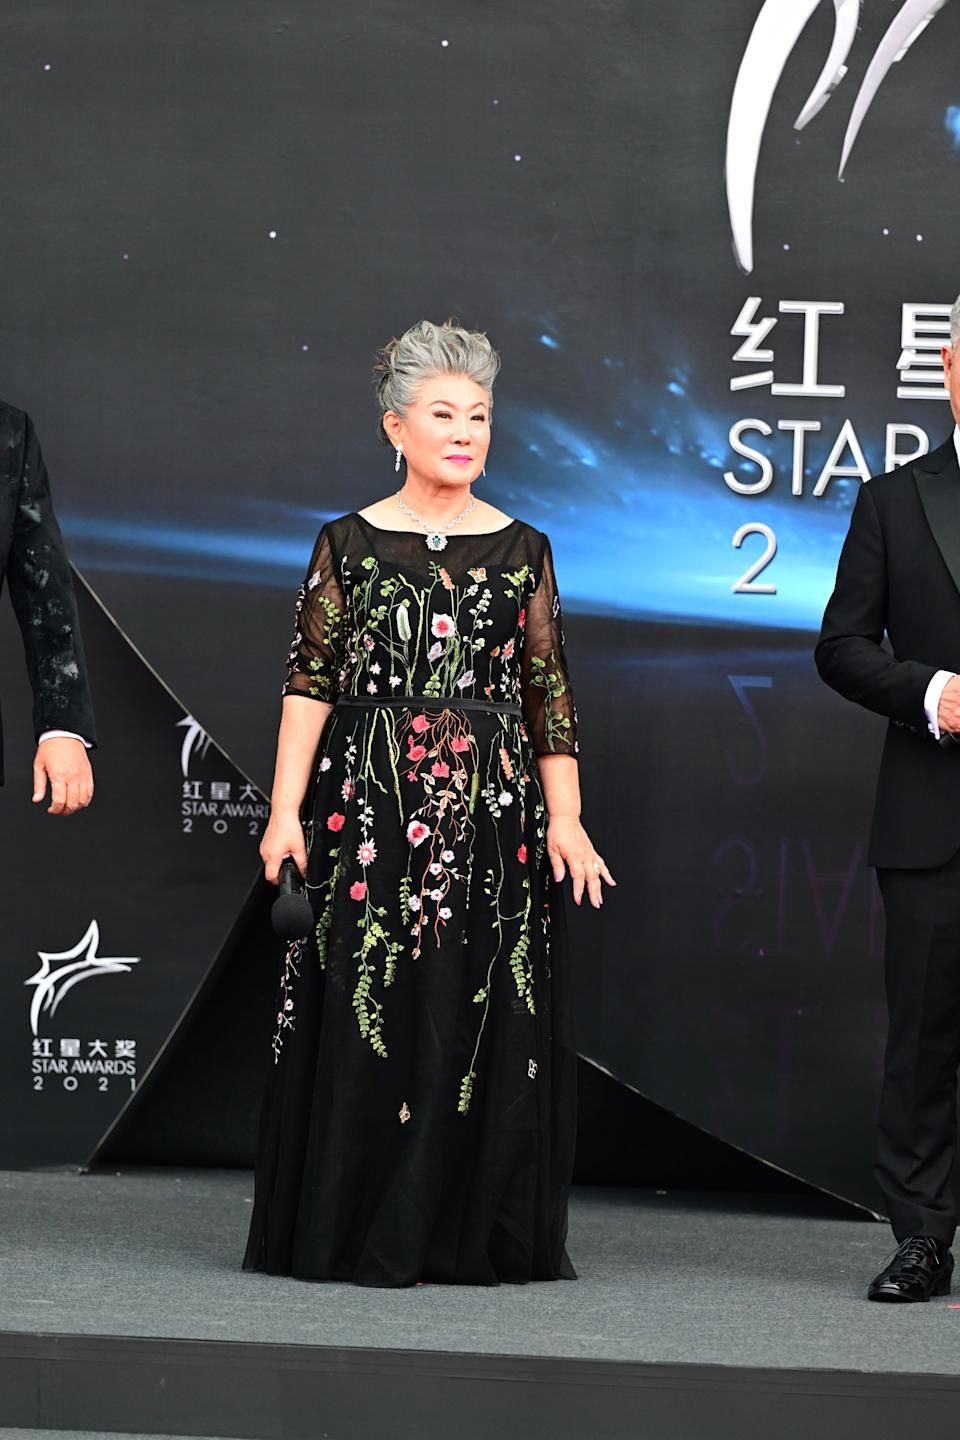 Jin Yin Ji at Star Awards held at Changi Airport on 18 April 2021. (Photo: Mediacorp)